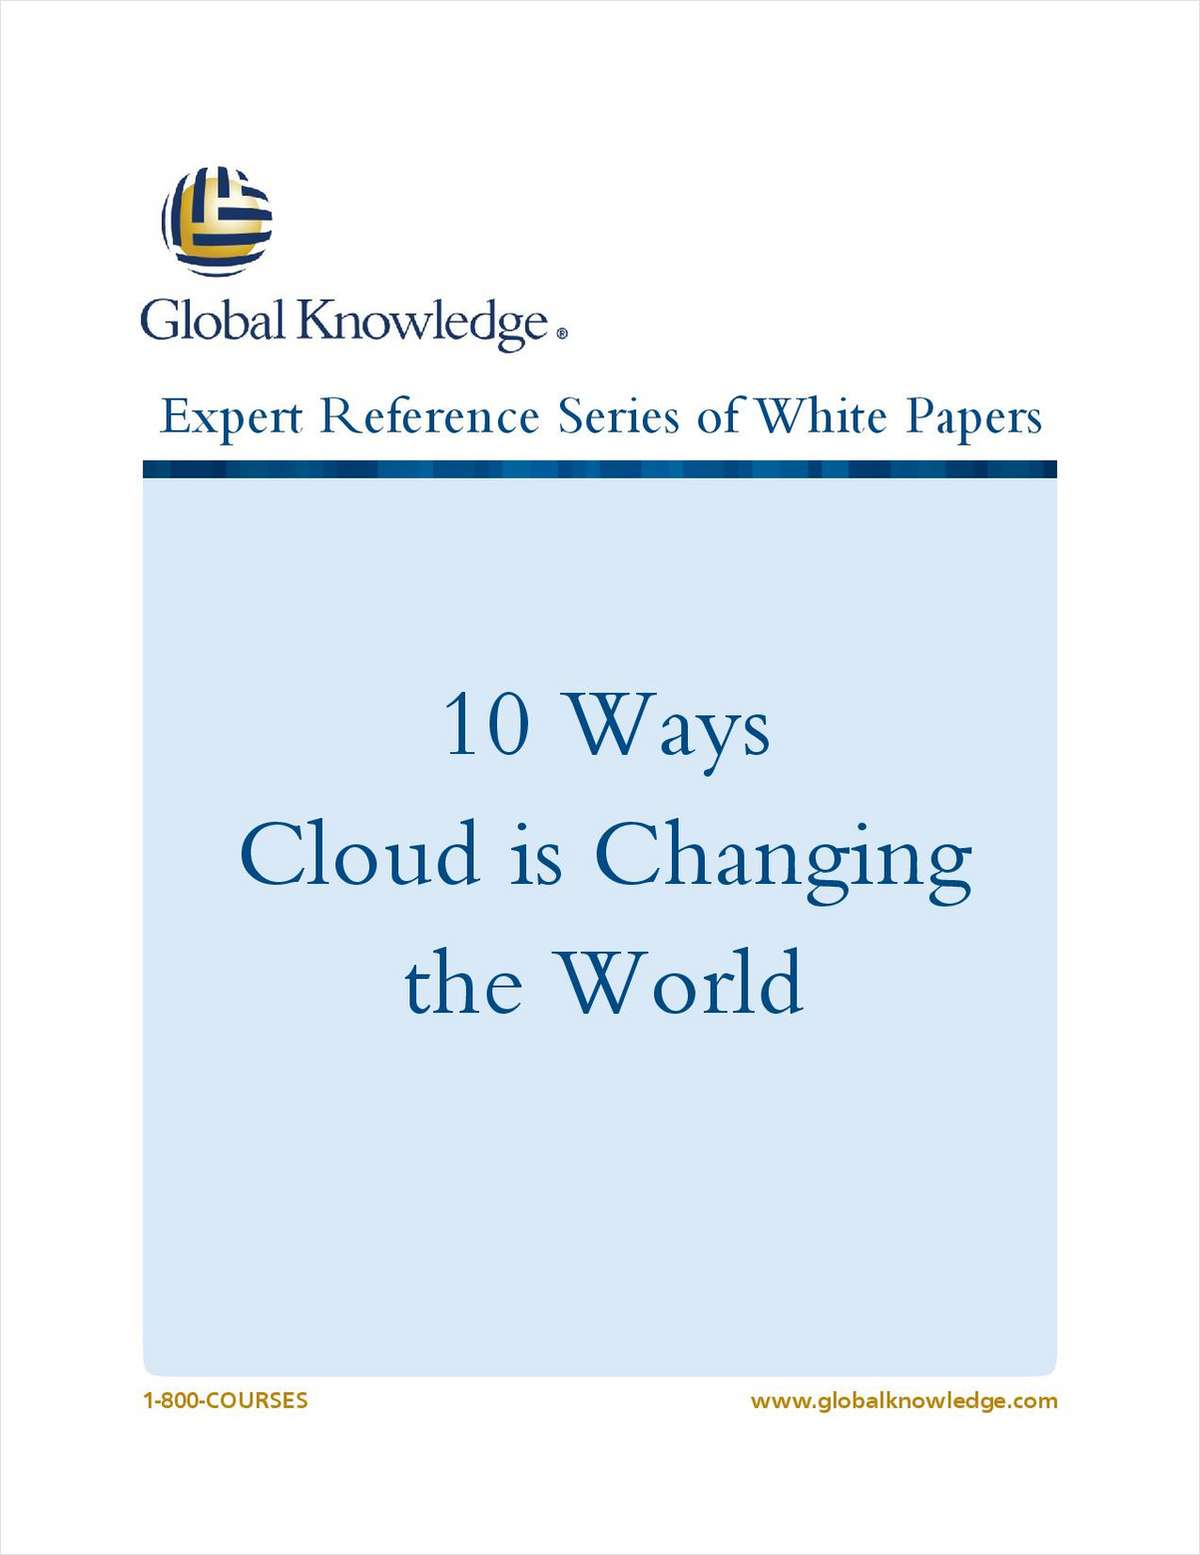 10 Ways Cloud is Changing the World